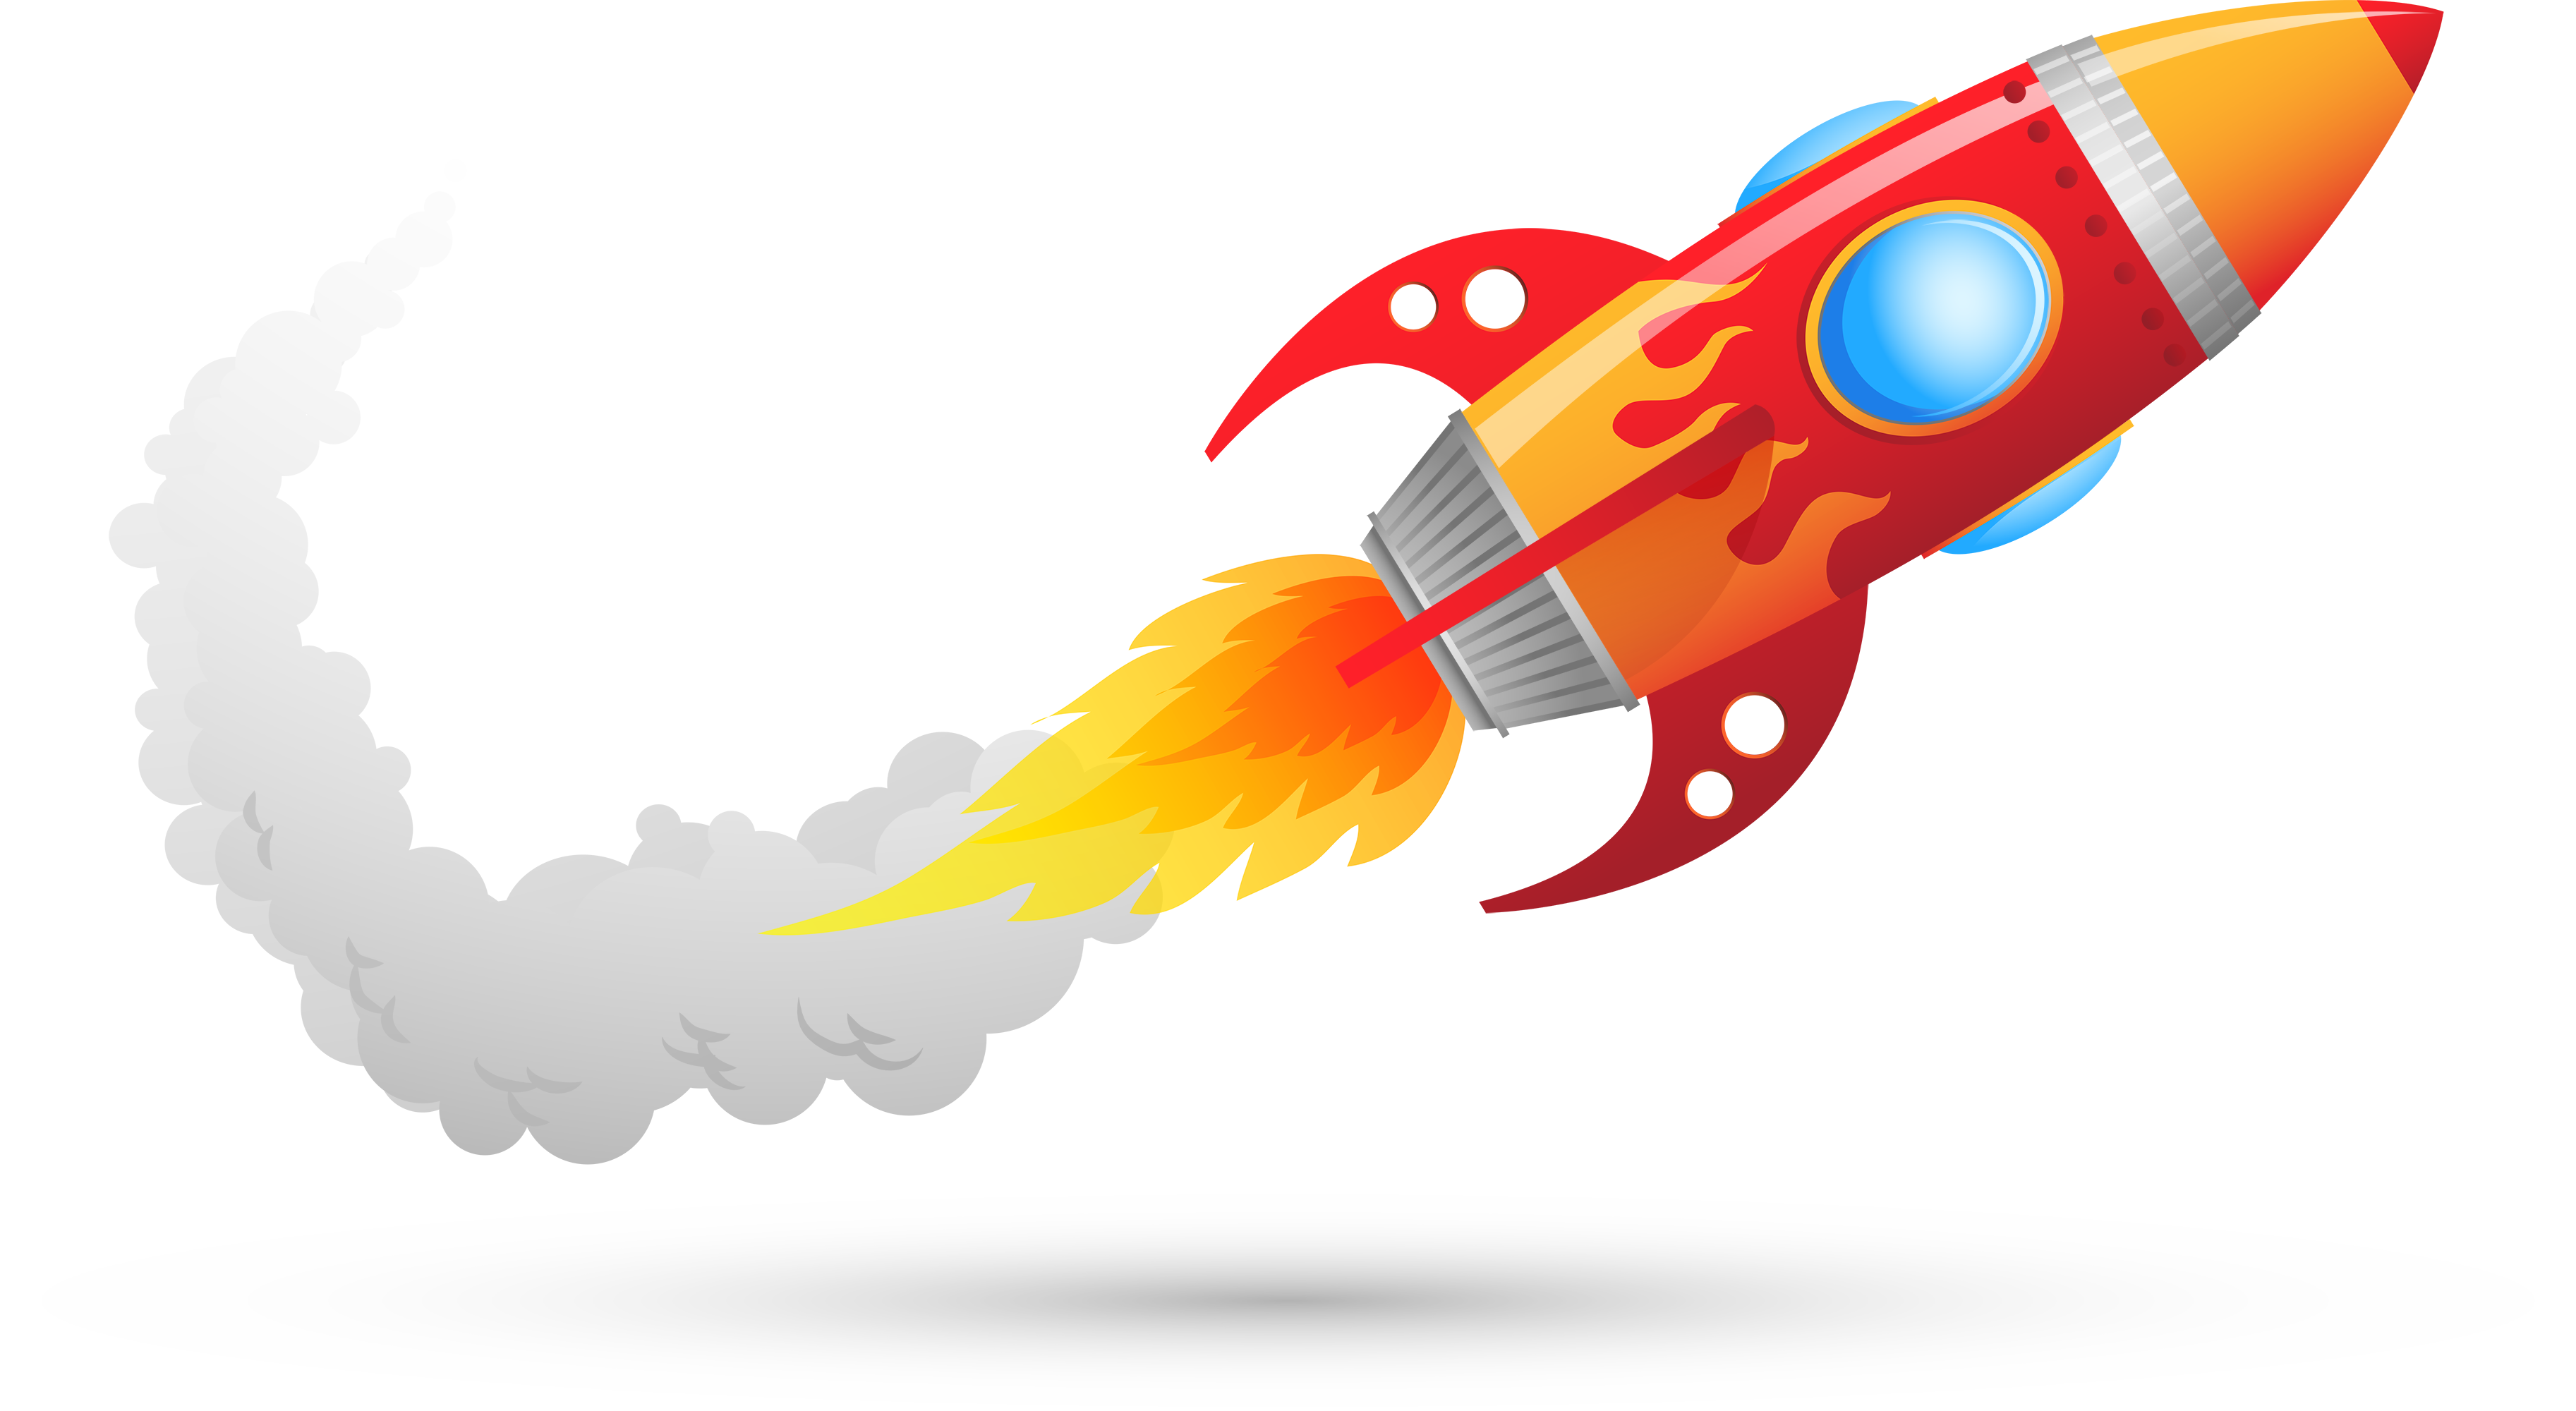 Rocket png. Download image arts